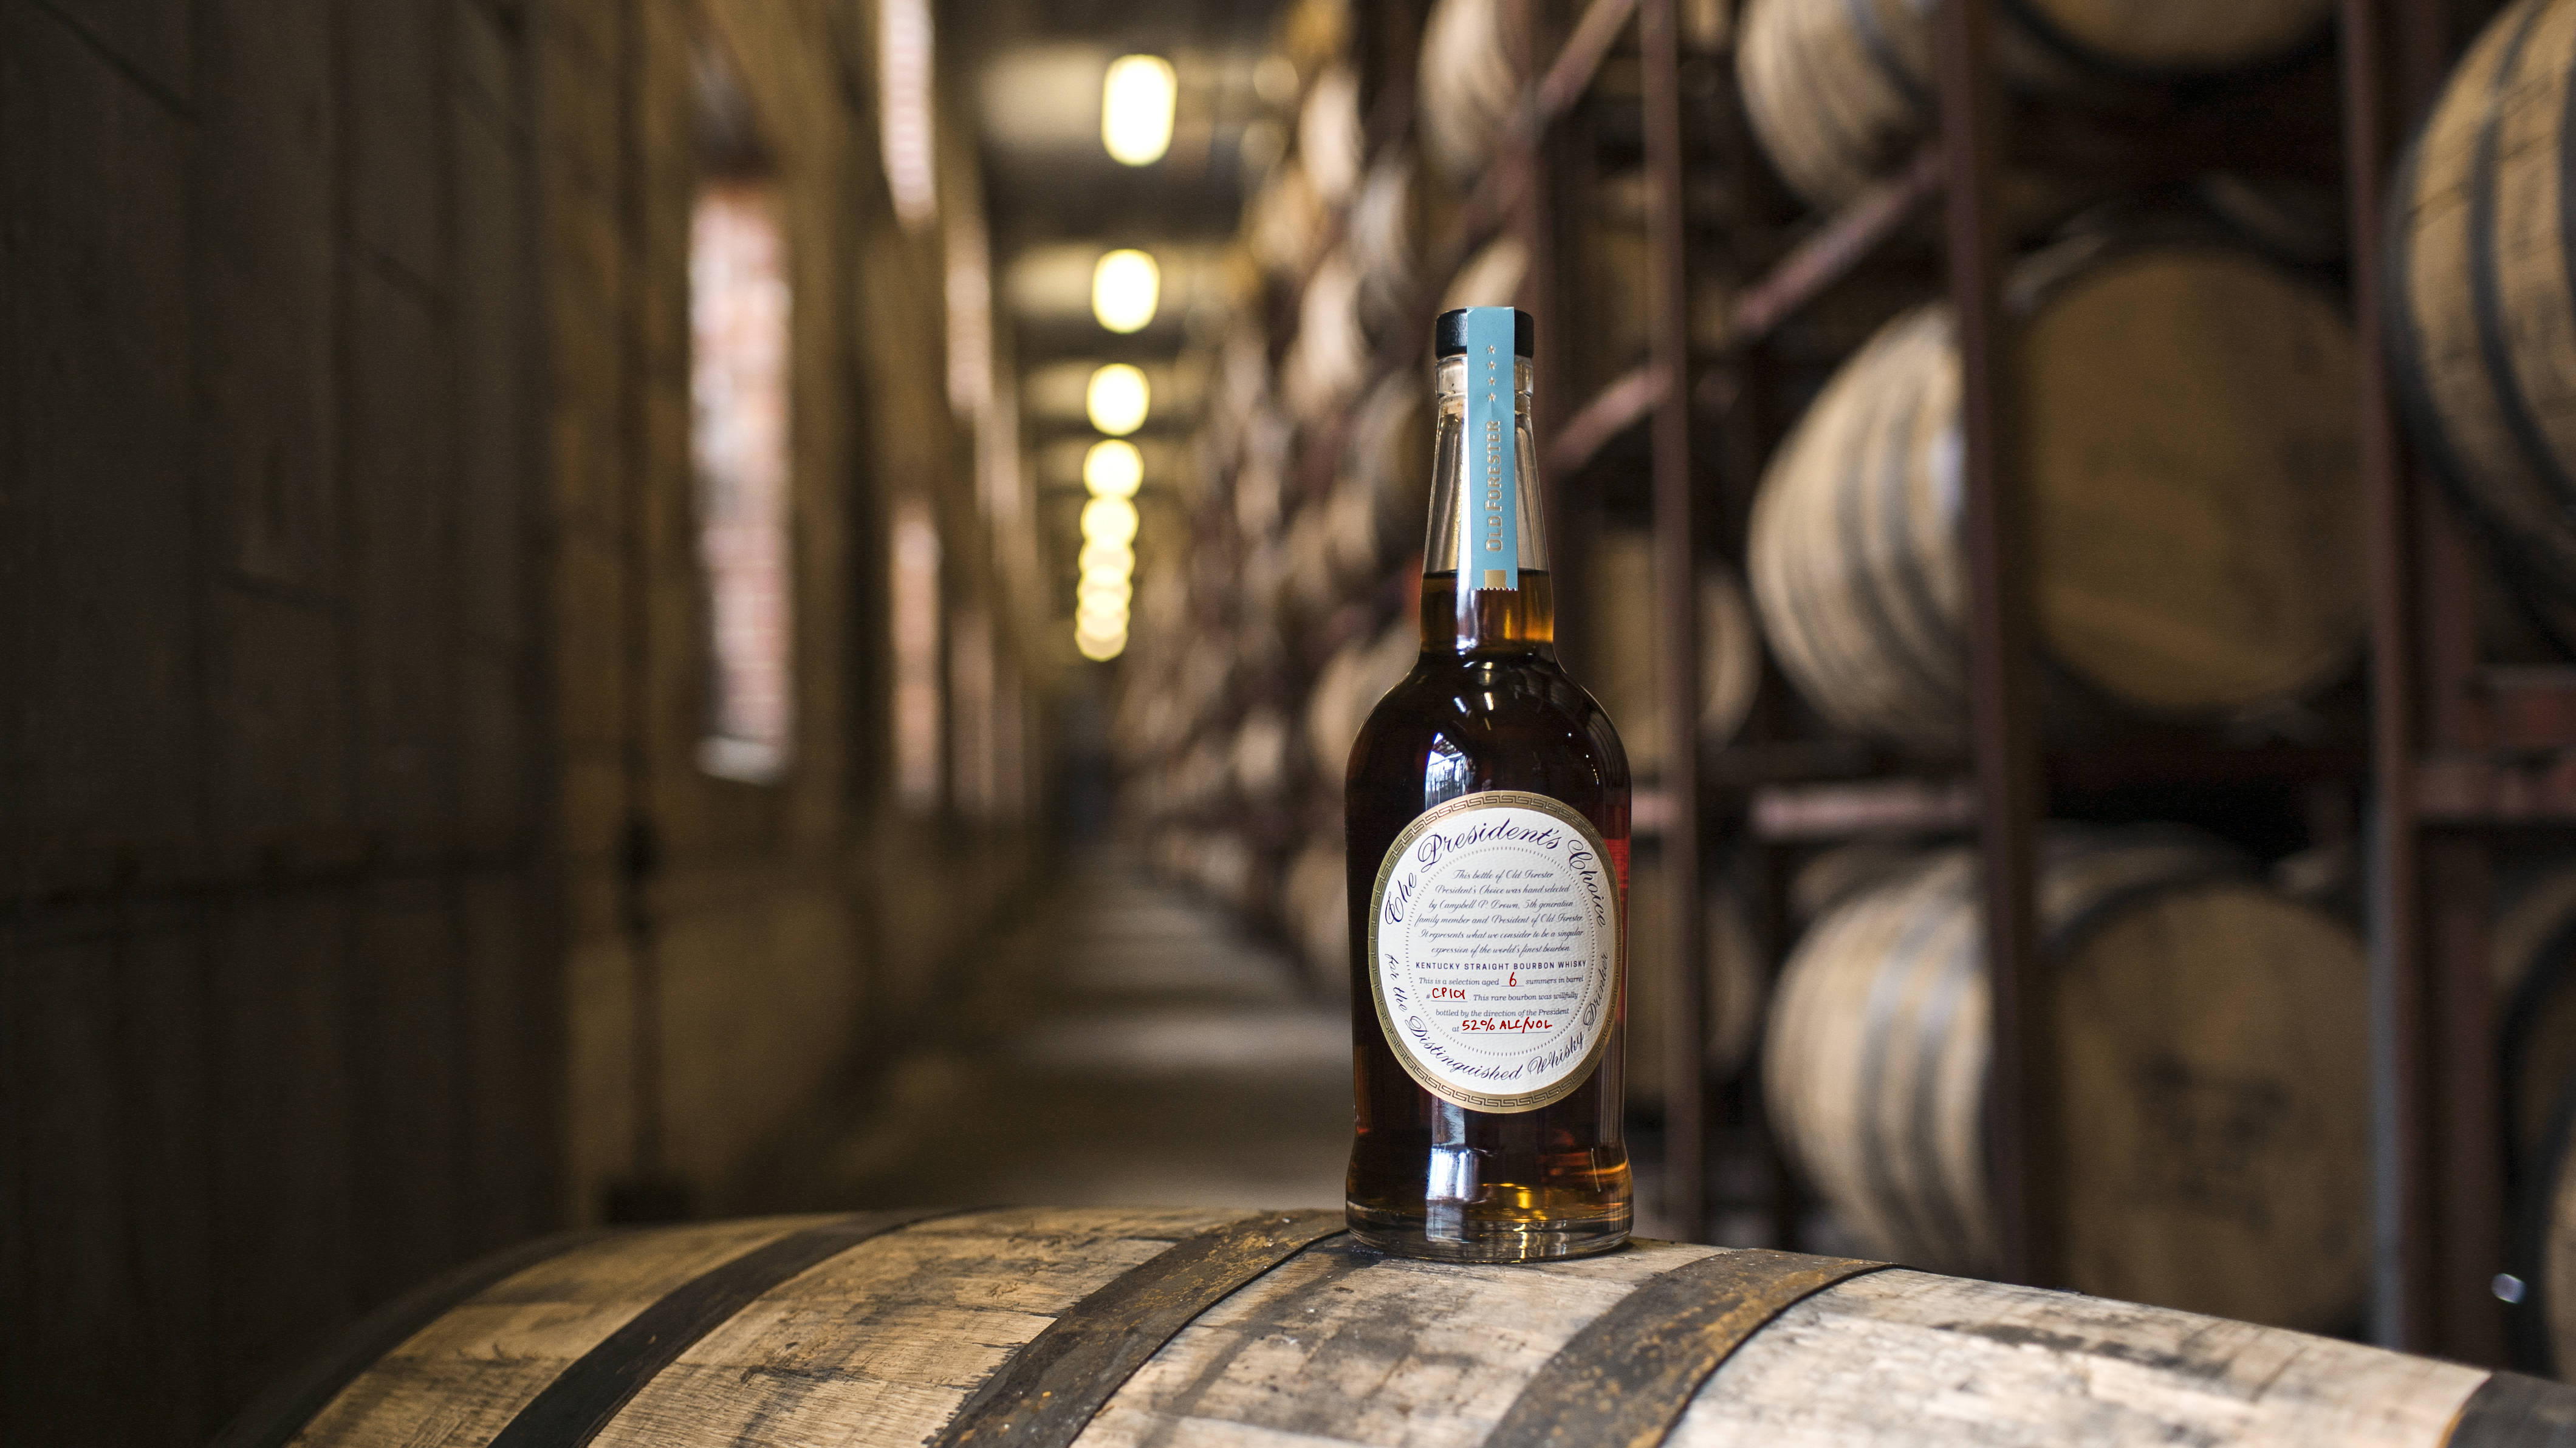 SOLD OUT: The President's Choice Tour and Tasting ($185)